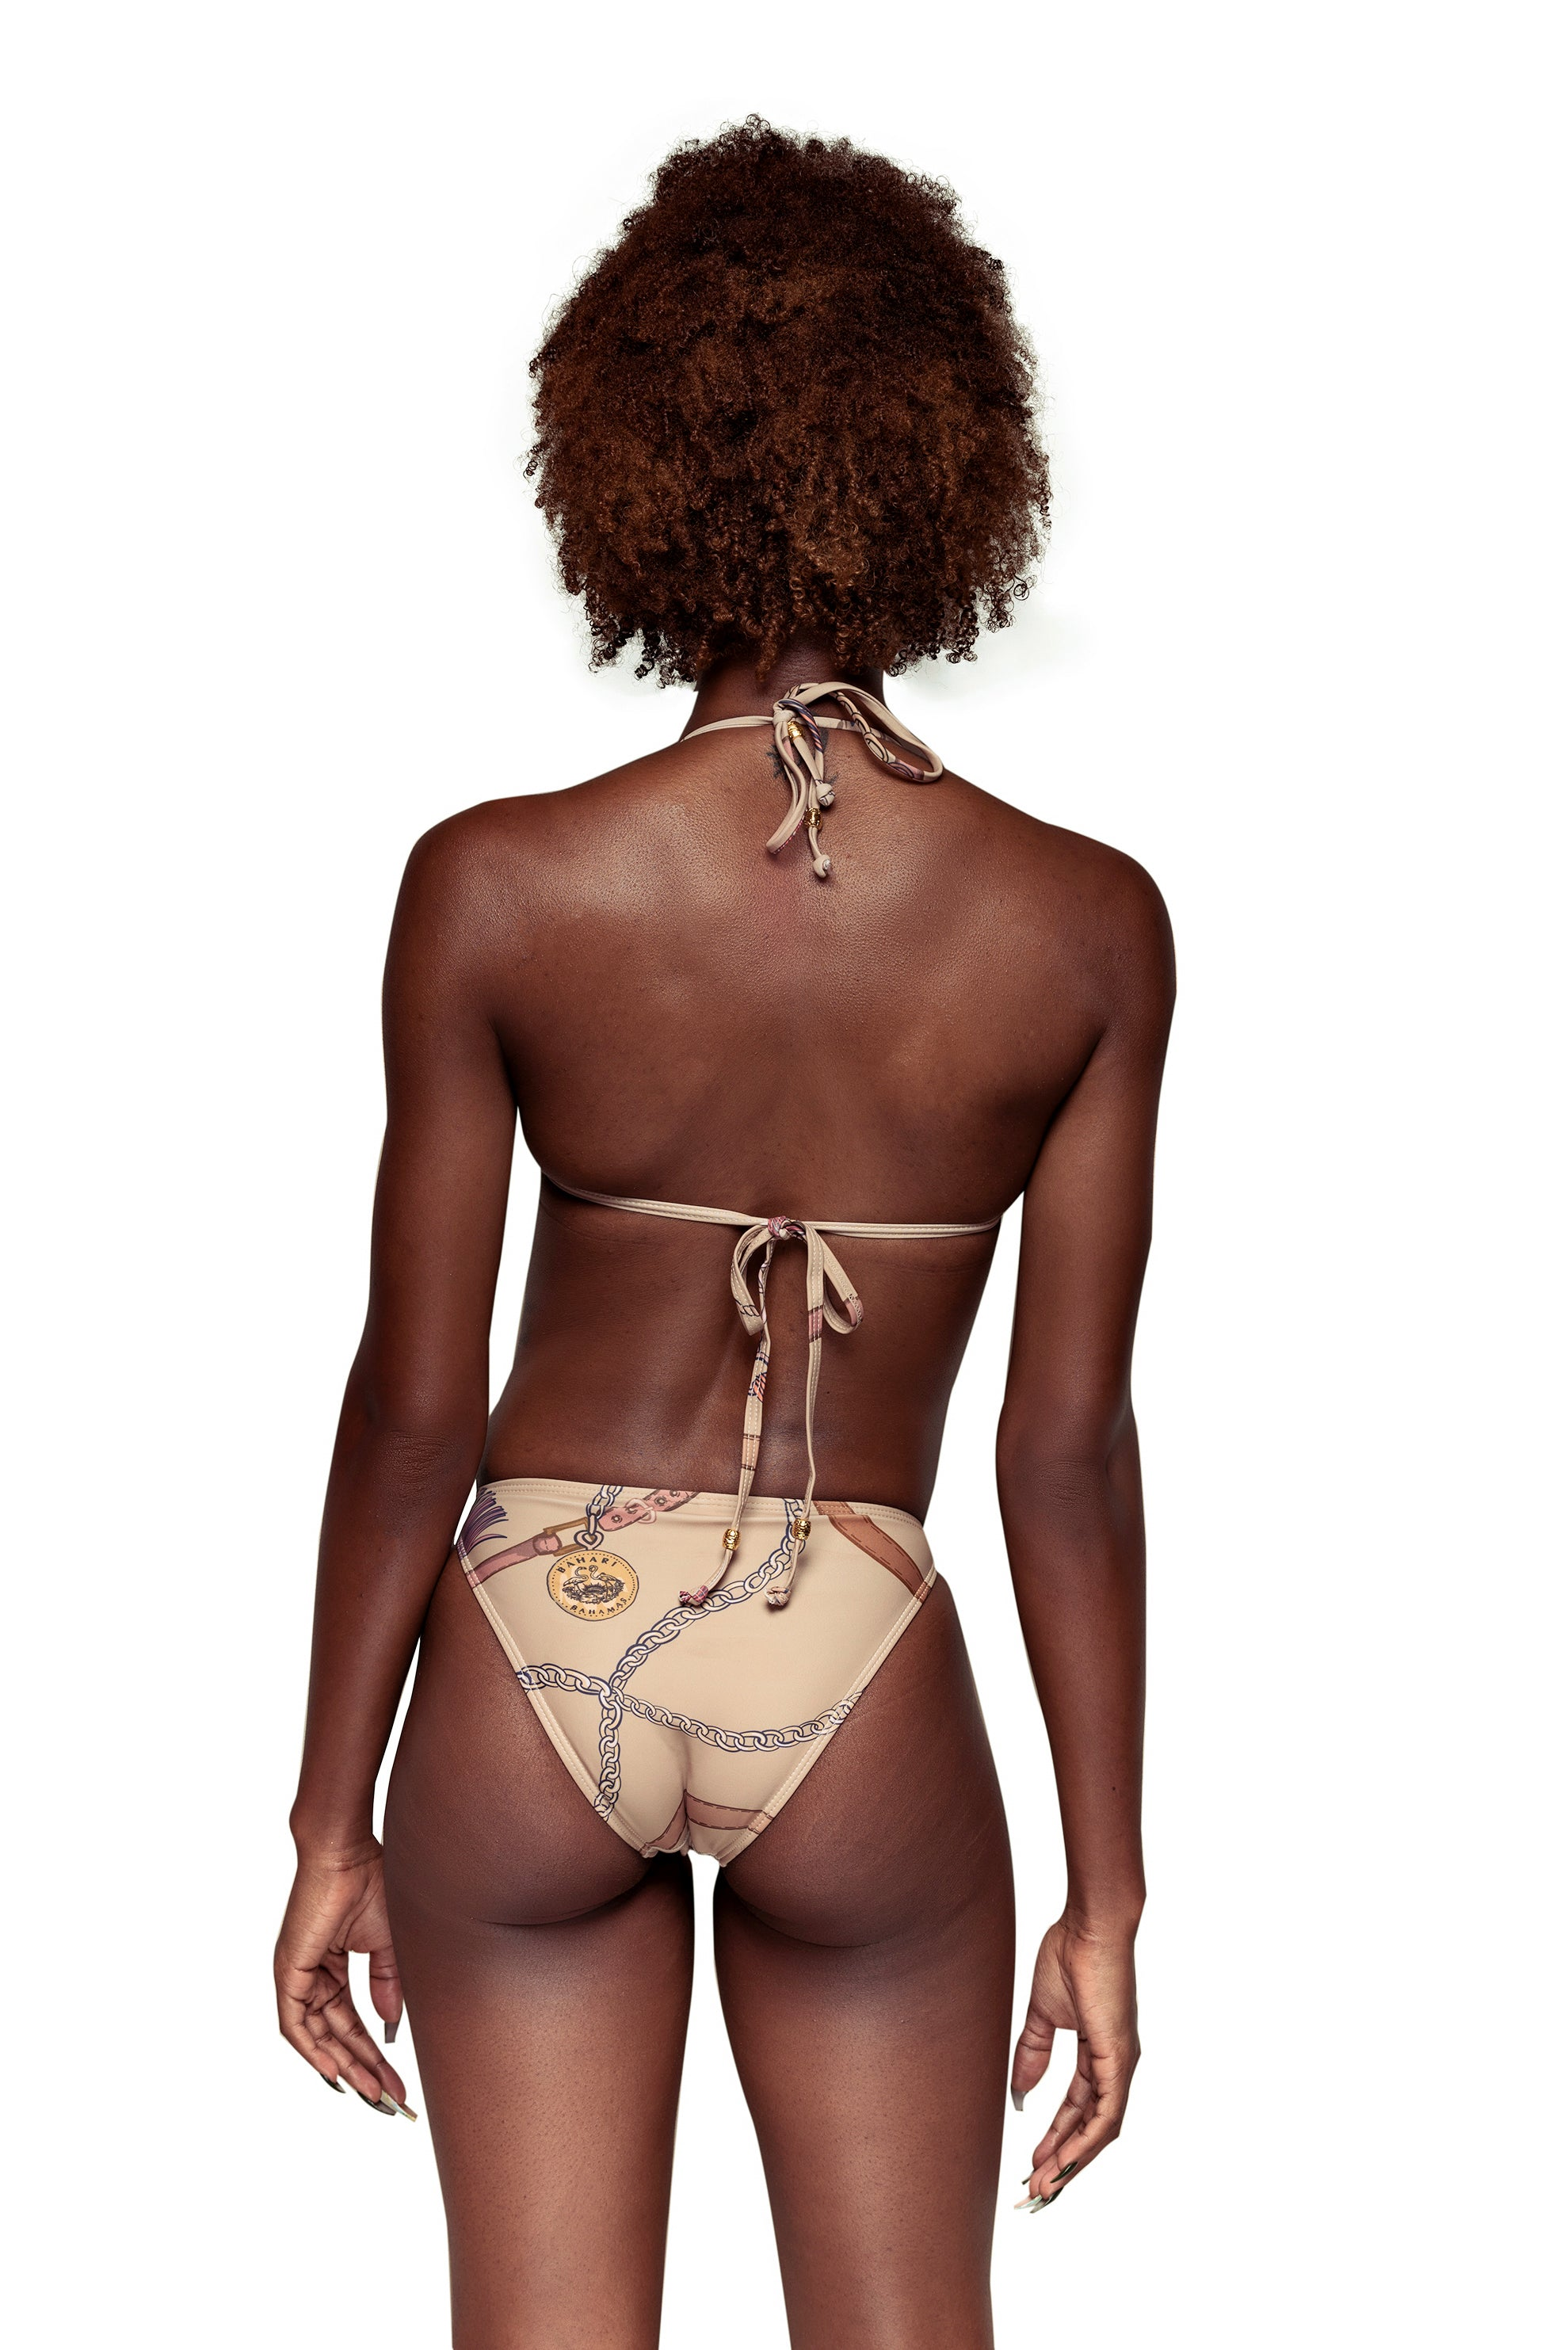 The Deuce Medallion Bikini